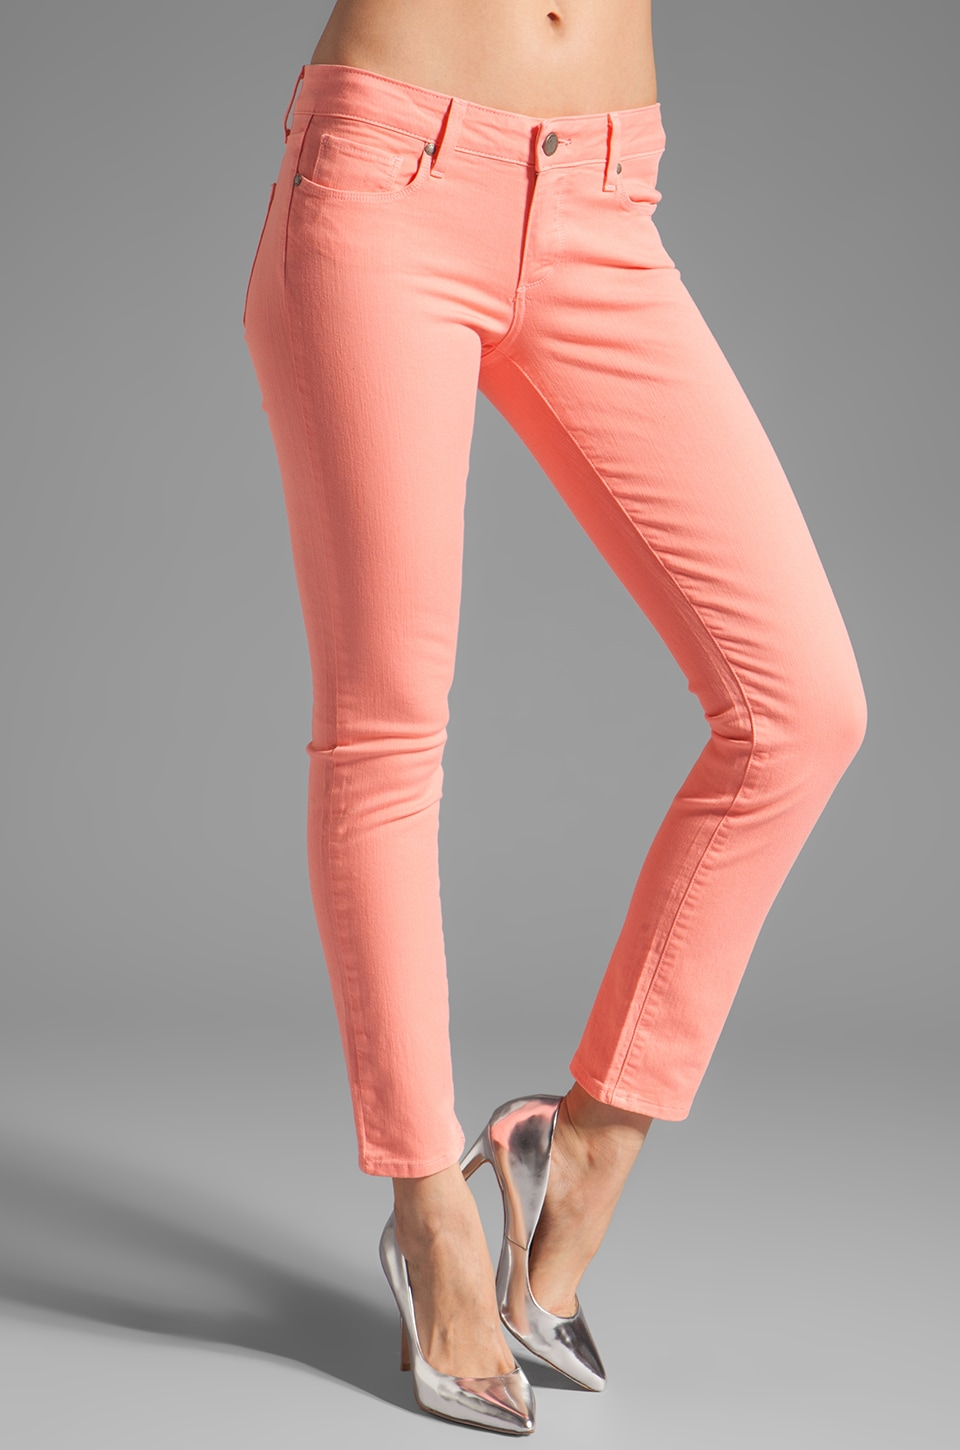 Paige Denim Skyline Ankle Peg in Flamingo